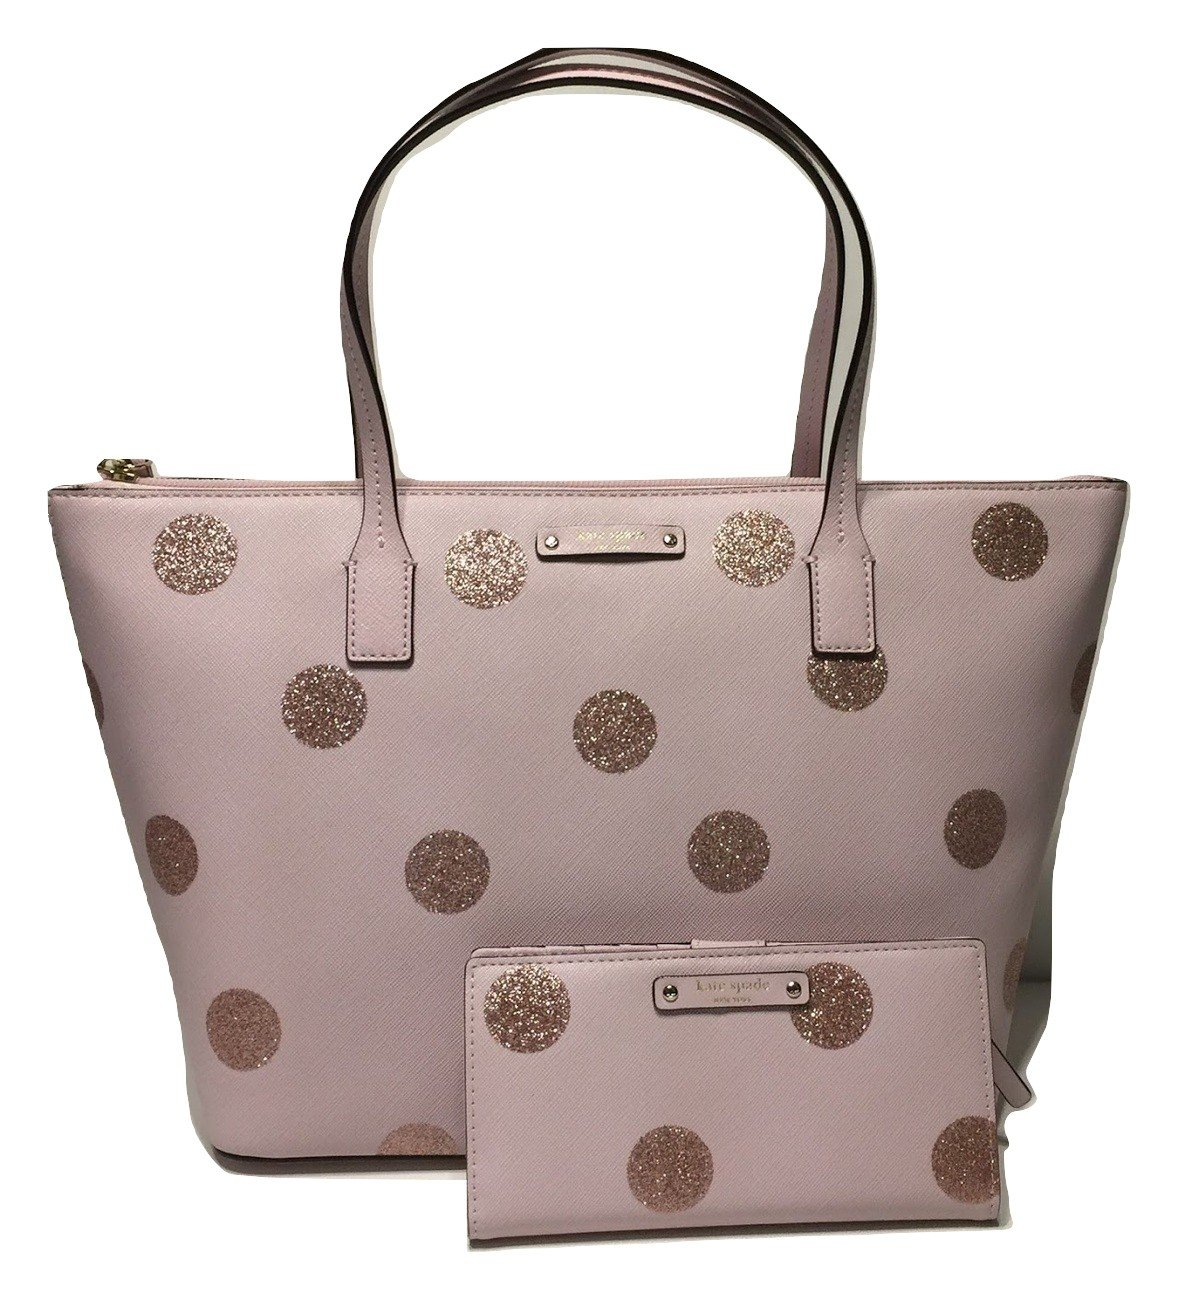 Kate Spade New York Haven Lane Hani WKRU4119 Pink Glitter Polka Dot plmdwn/dot (679) bundled with matching Stacy Wallet